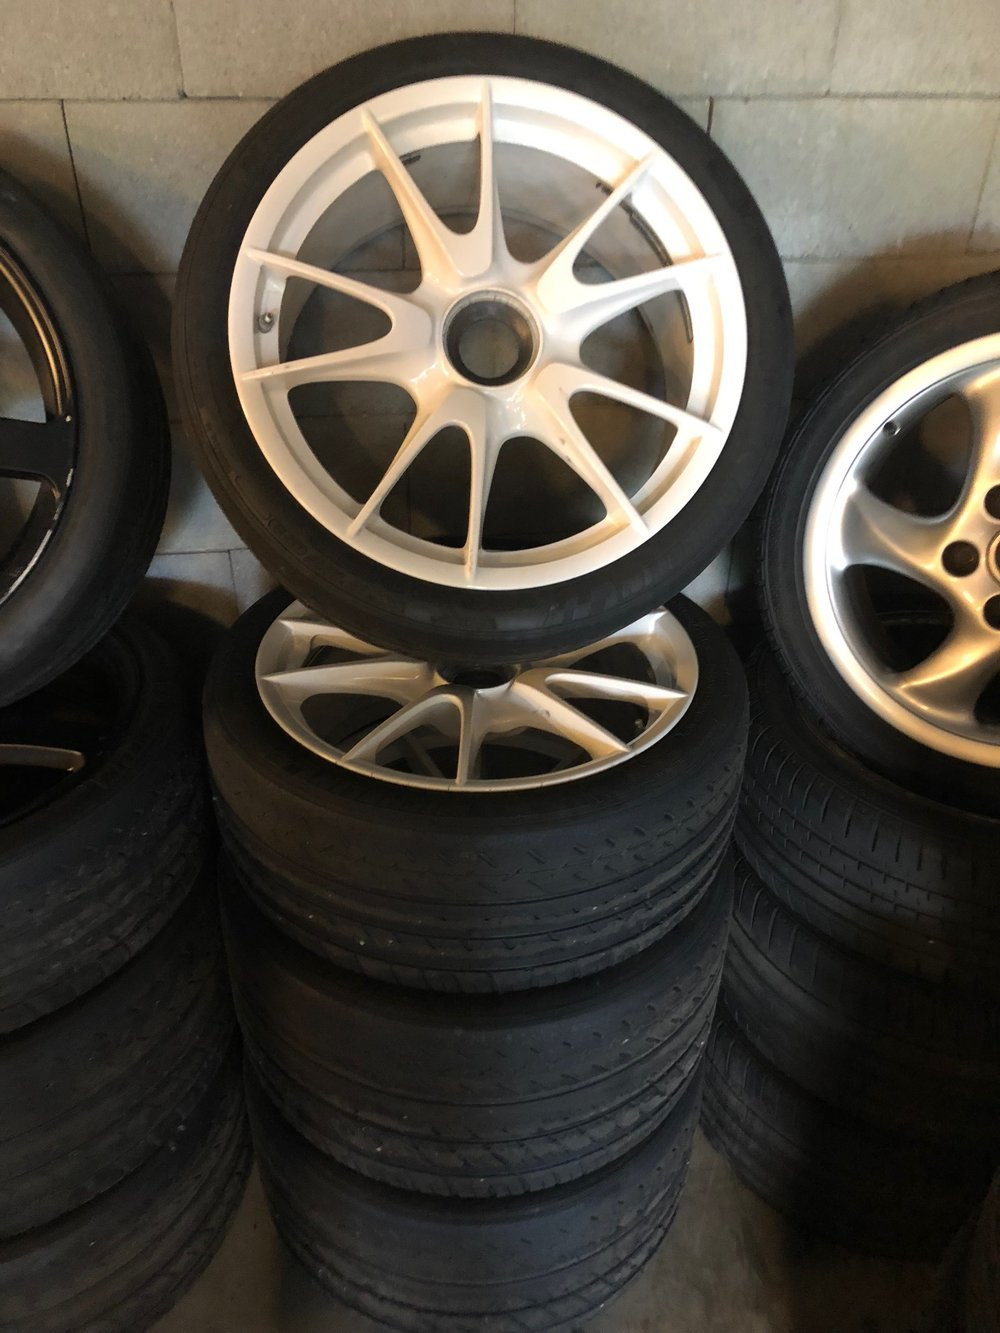 997 GT3 RS, Turbo S, GT2, … with Pilot Sport cup (possibilty other new tyres)